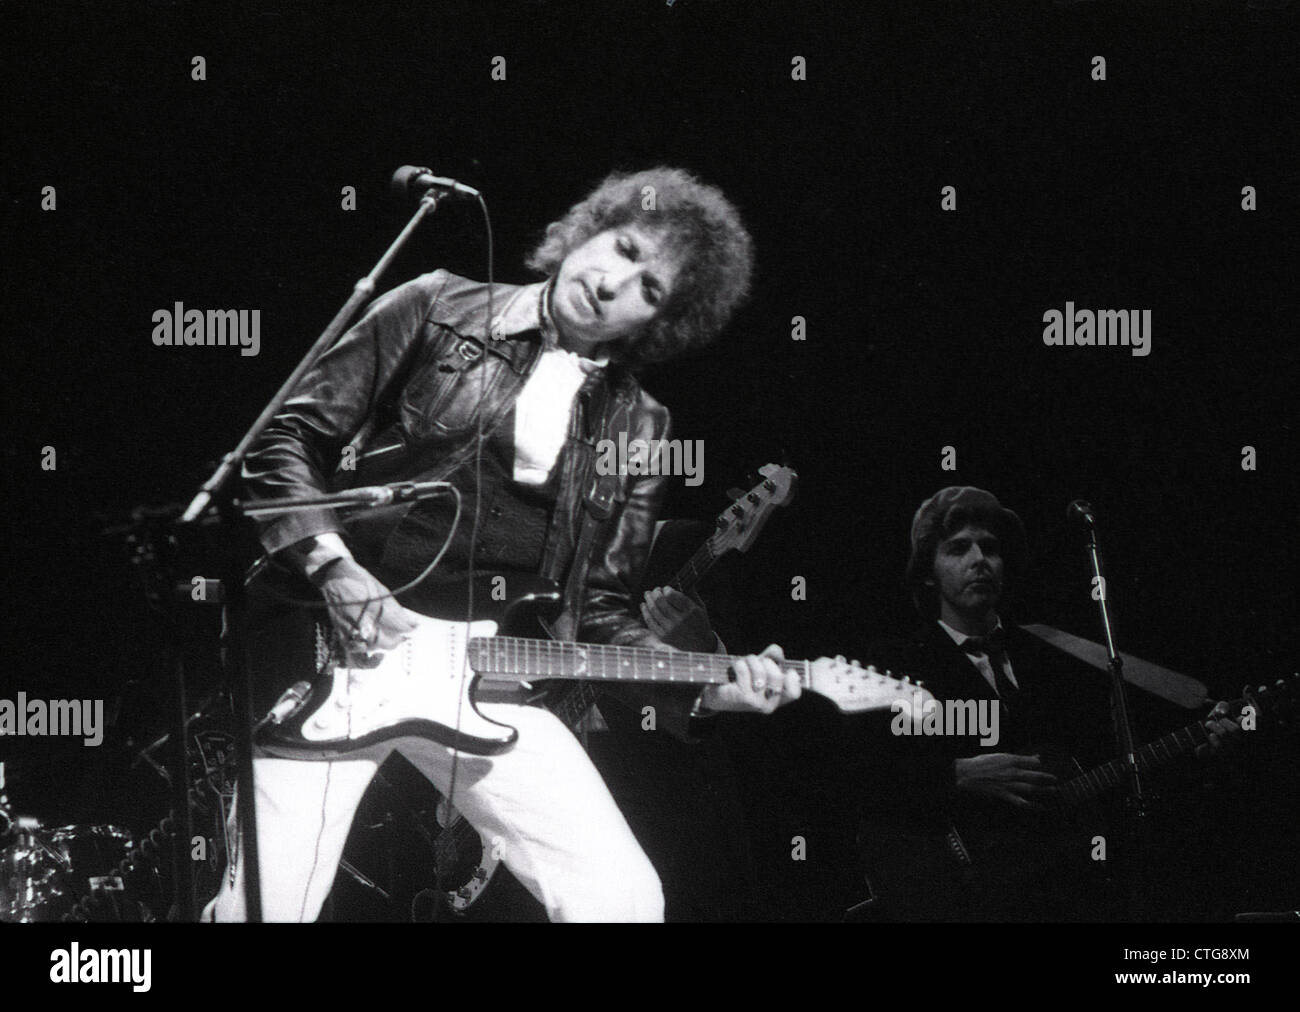 009294 - Bob Dylan in concert at Earls Court, London in June 1978 - Stock Image